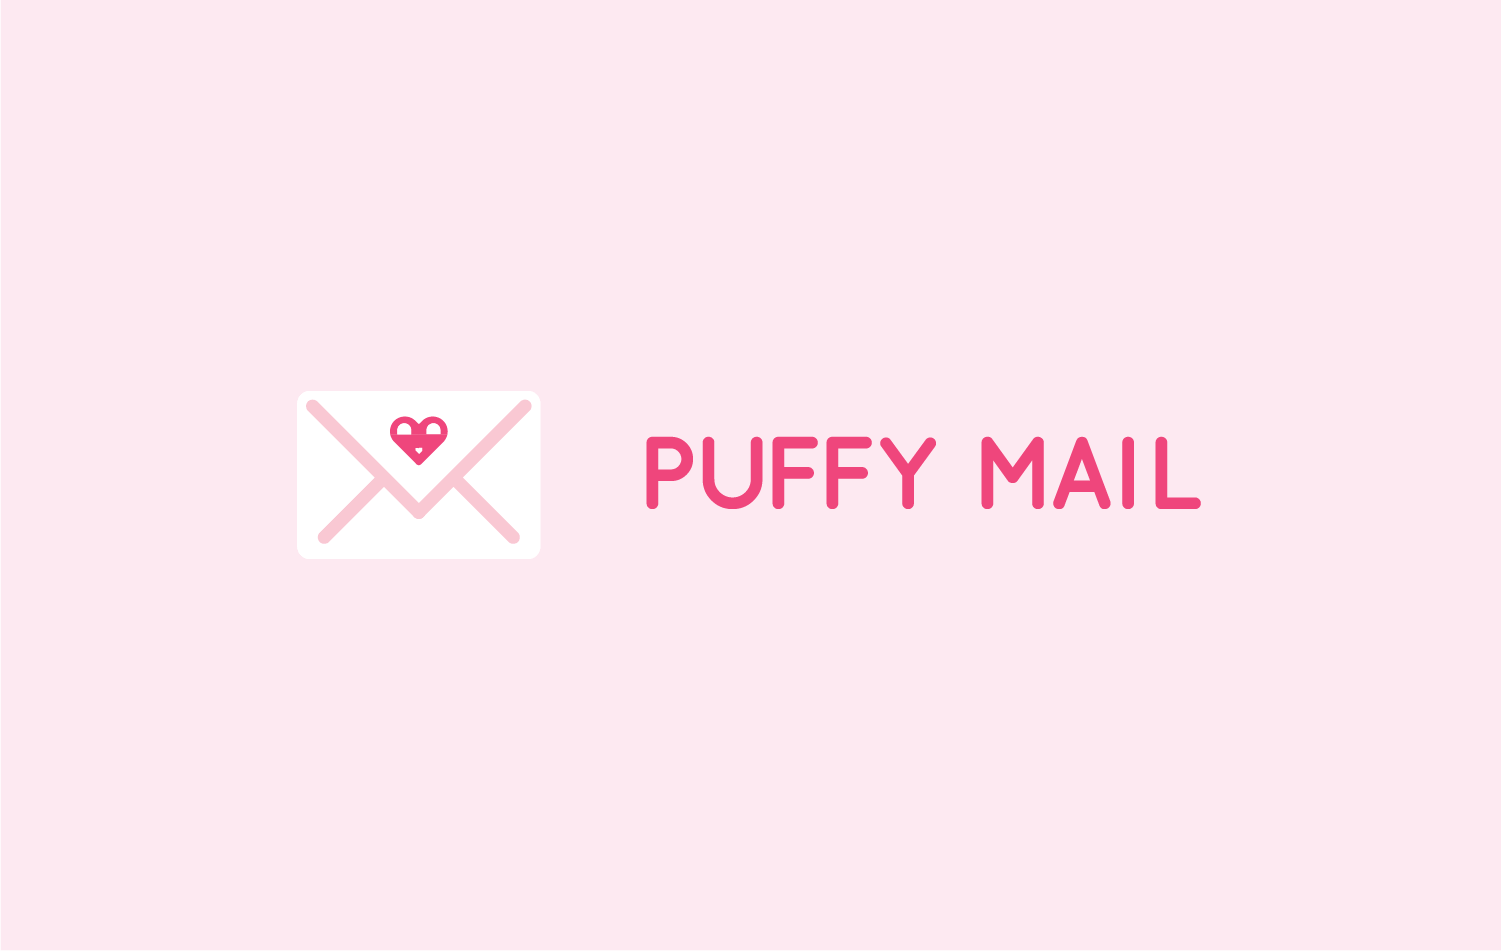 puffy mail logotype